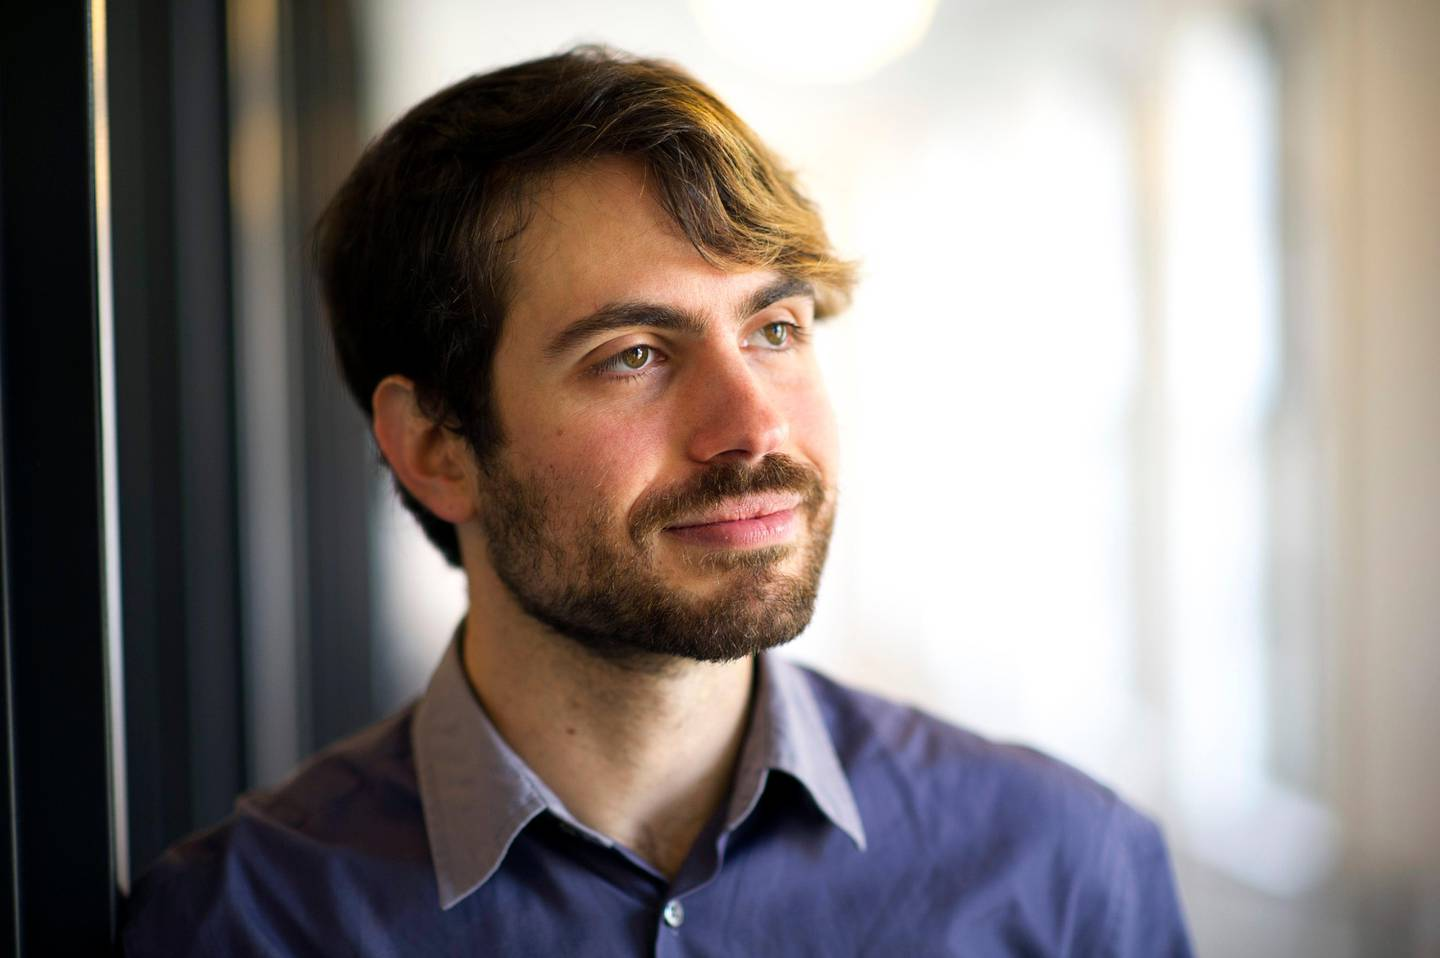 Justin Rosenstein, co-founder and chief executive officer at Asana Inc., stands for a photograph after a Bloomberg West Television interview in San Francisco, California, U.S., on Tuesday, March 26, 2013. Asana Inc. provides a collaboration software that offers a web application that enables users to capture, plan, organize and distribute tasks. Photographer: David Paul Morris/Bloomberg *** Local Caption *** Justin Rosenstein